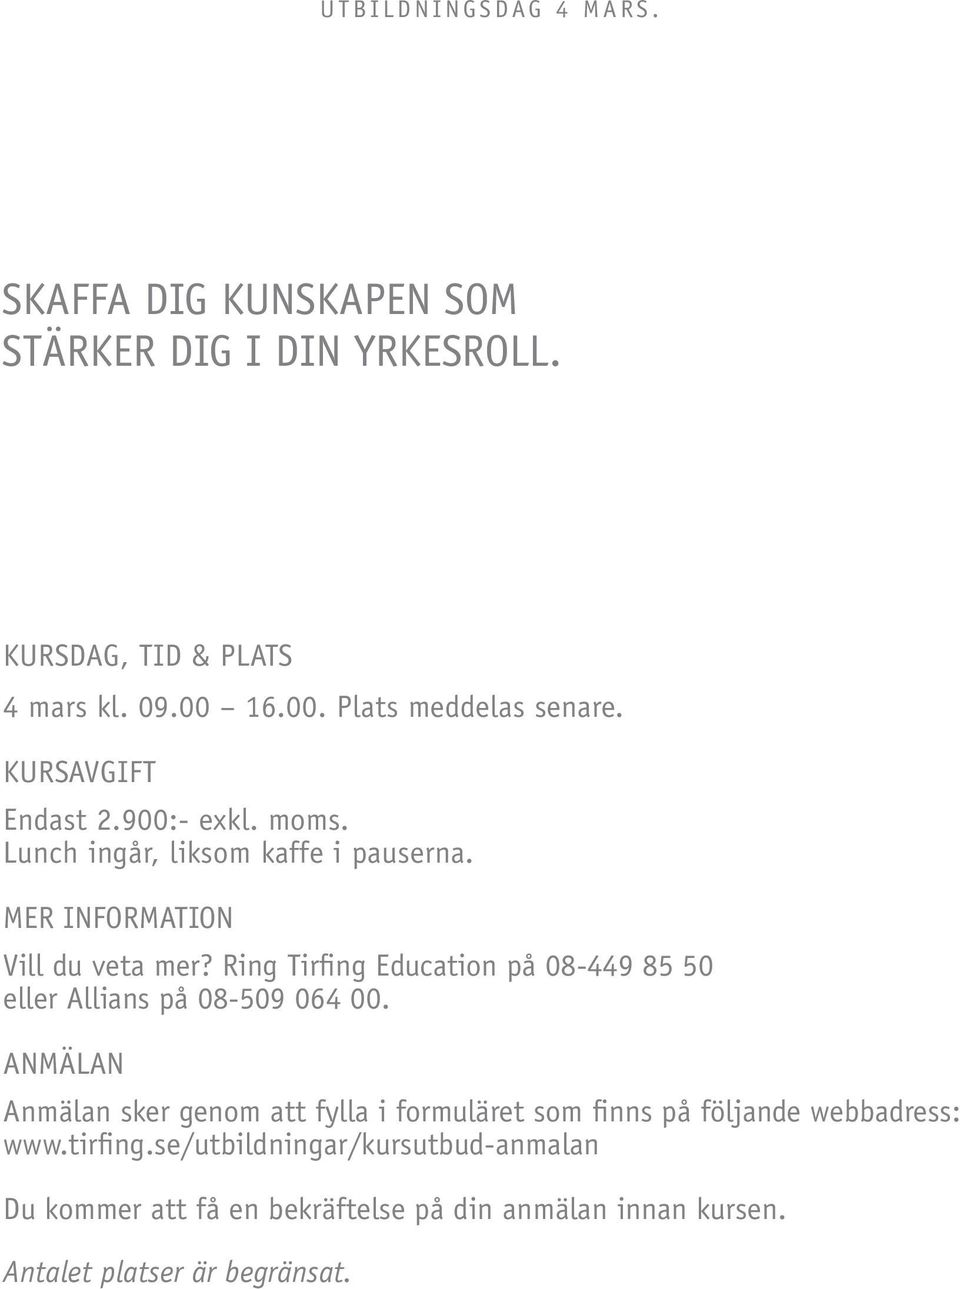 MER INFORMATION Vill du veta mer? Ring Tirfing Education på 08-449 85 50 eller Allians på 08-509 064 00.